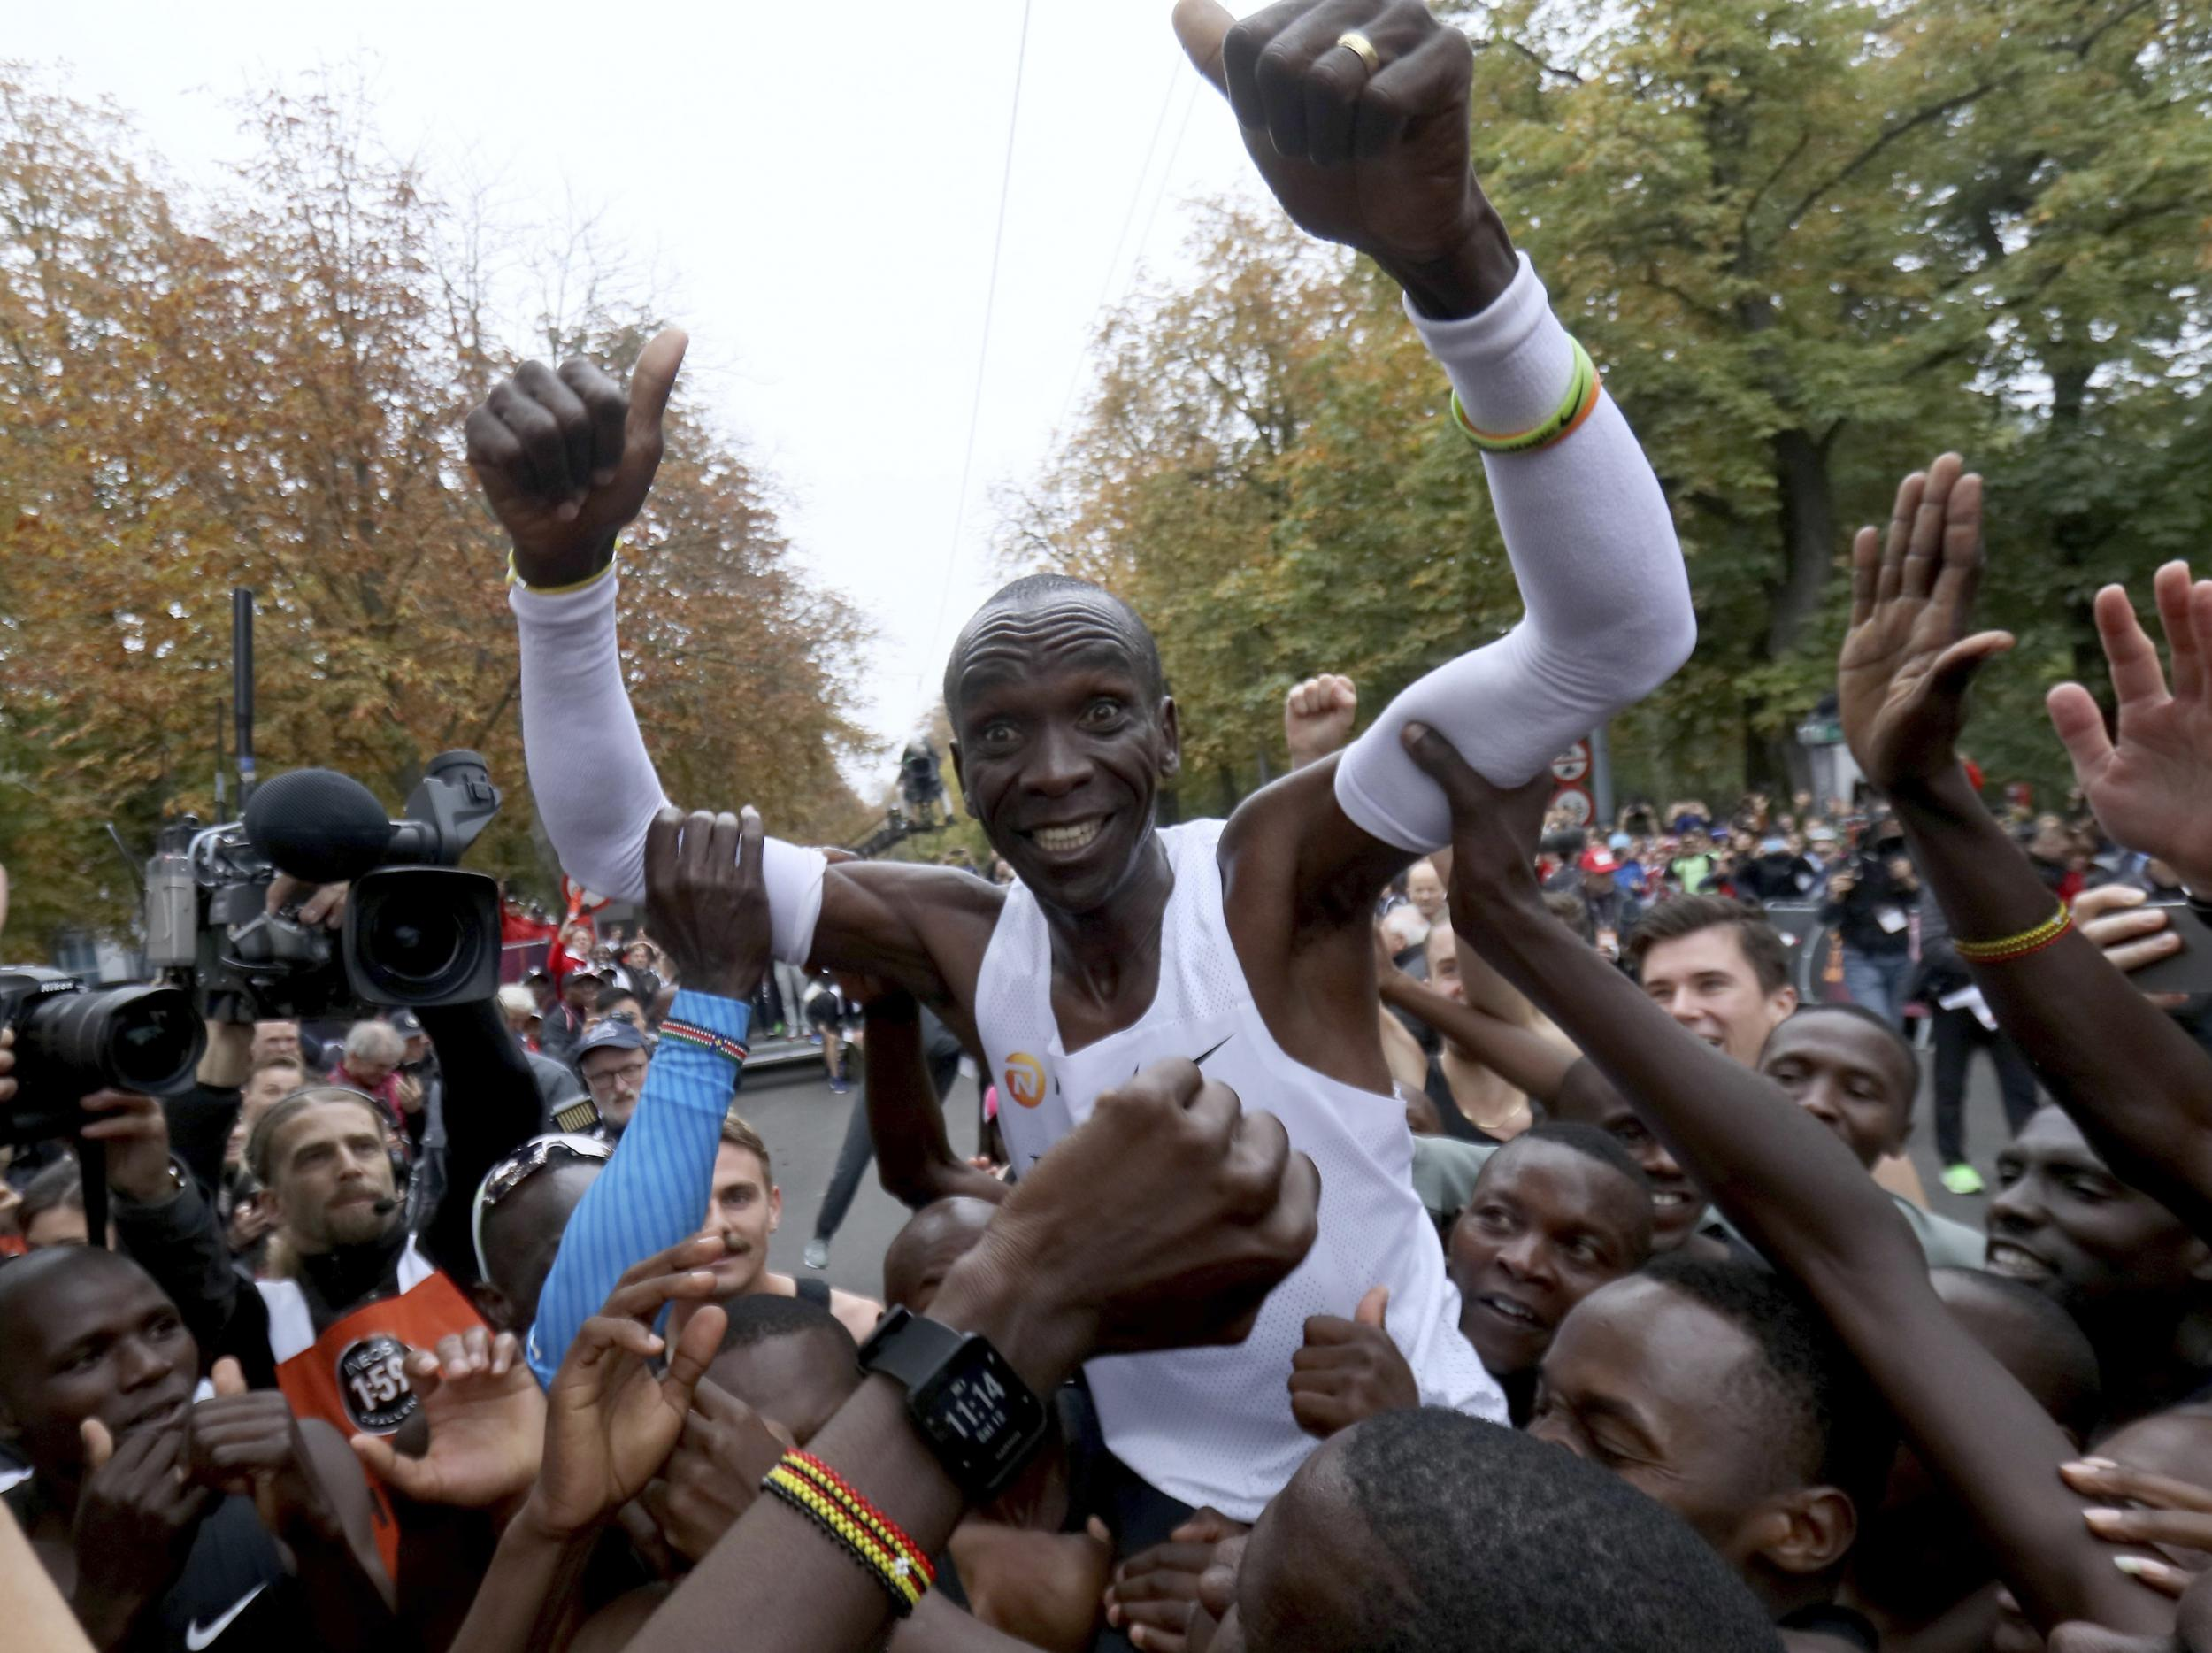 Eliud Kipchoge breaks two-hour marathon barrier to make sporting history – in 50 glorious photographs